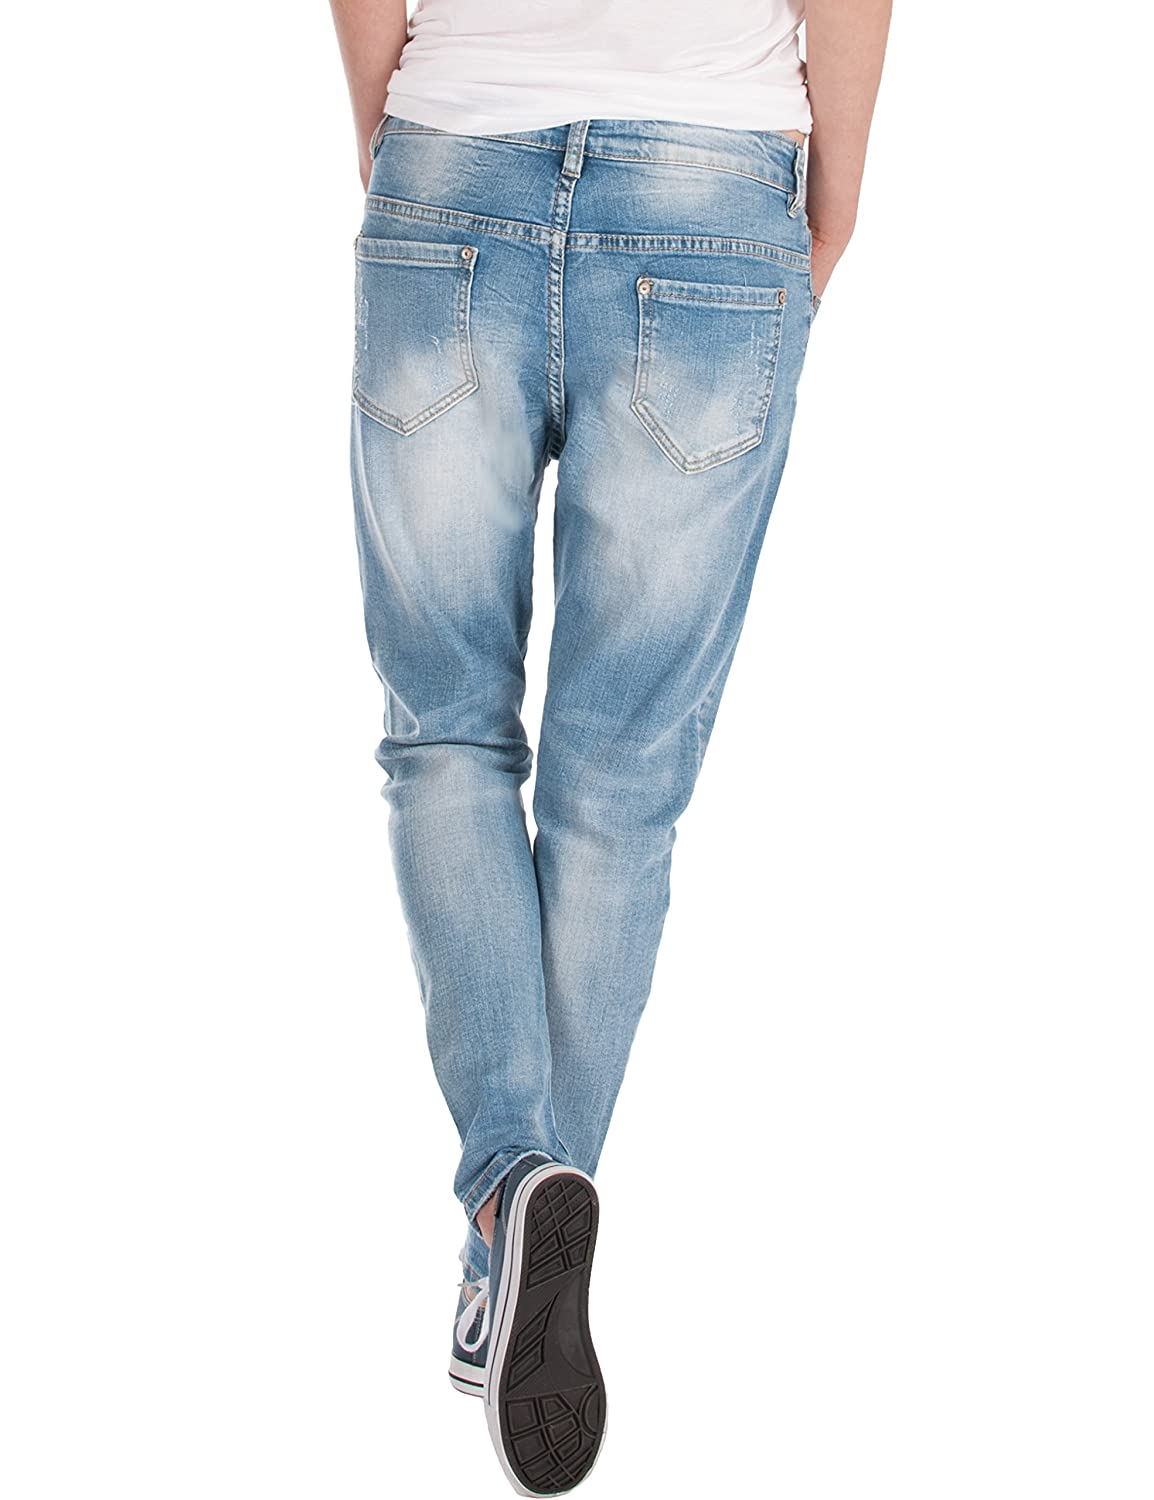 Fraternel Damen Jeans Hose Boyfriend Baggy Used Relaxed fit